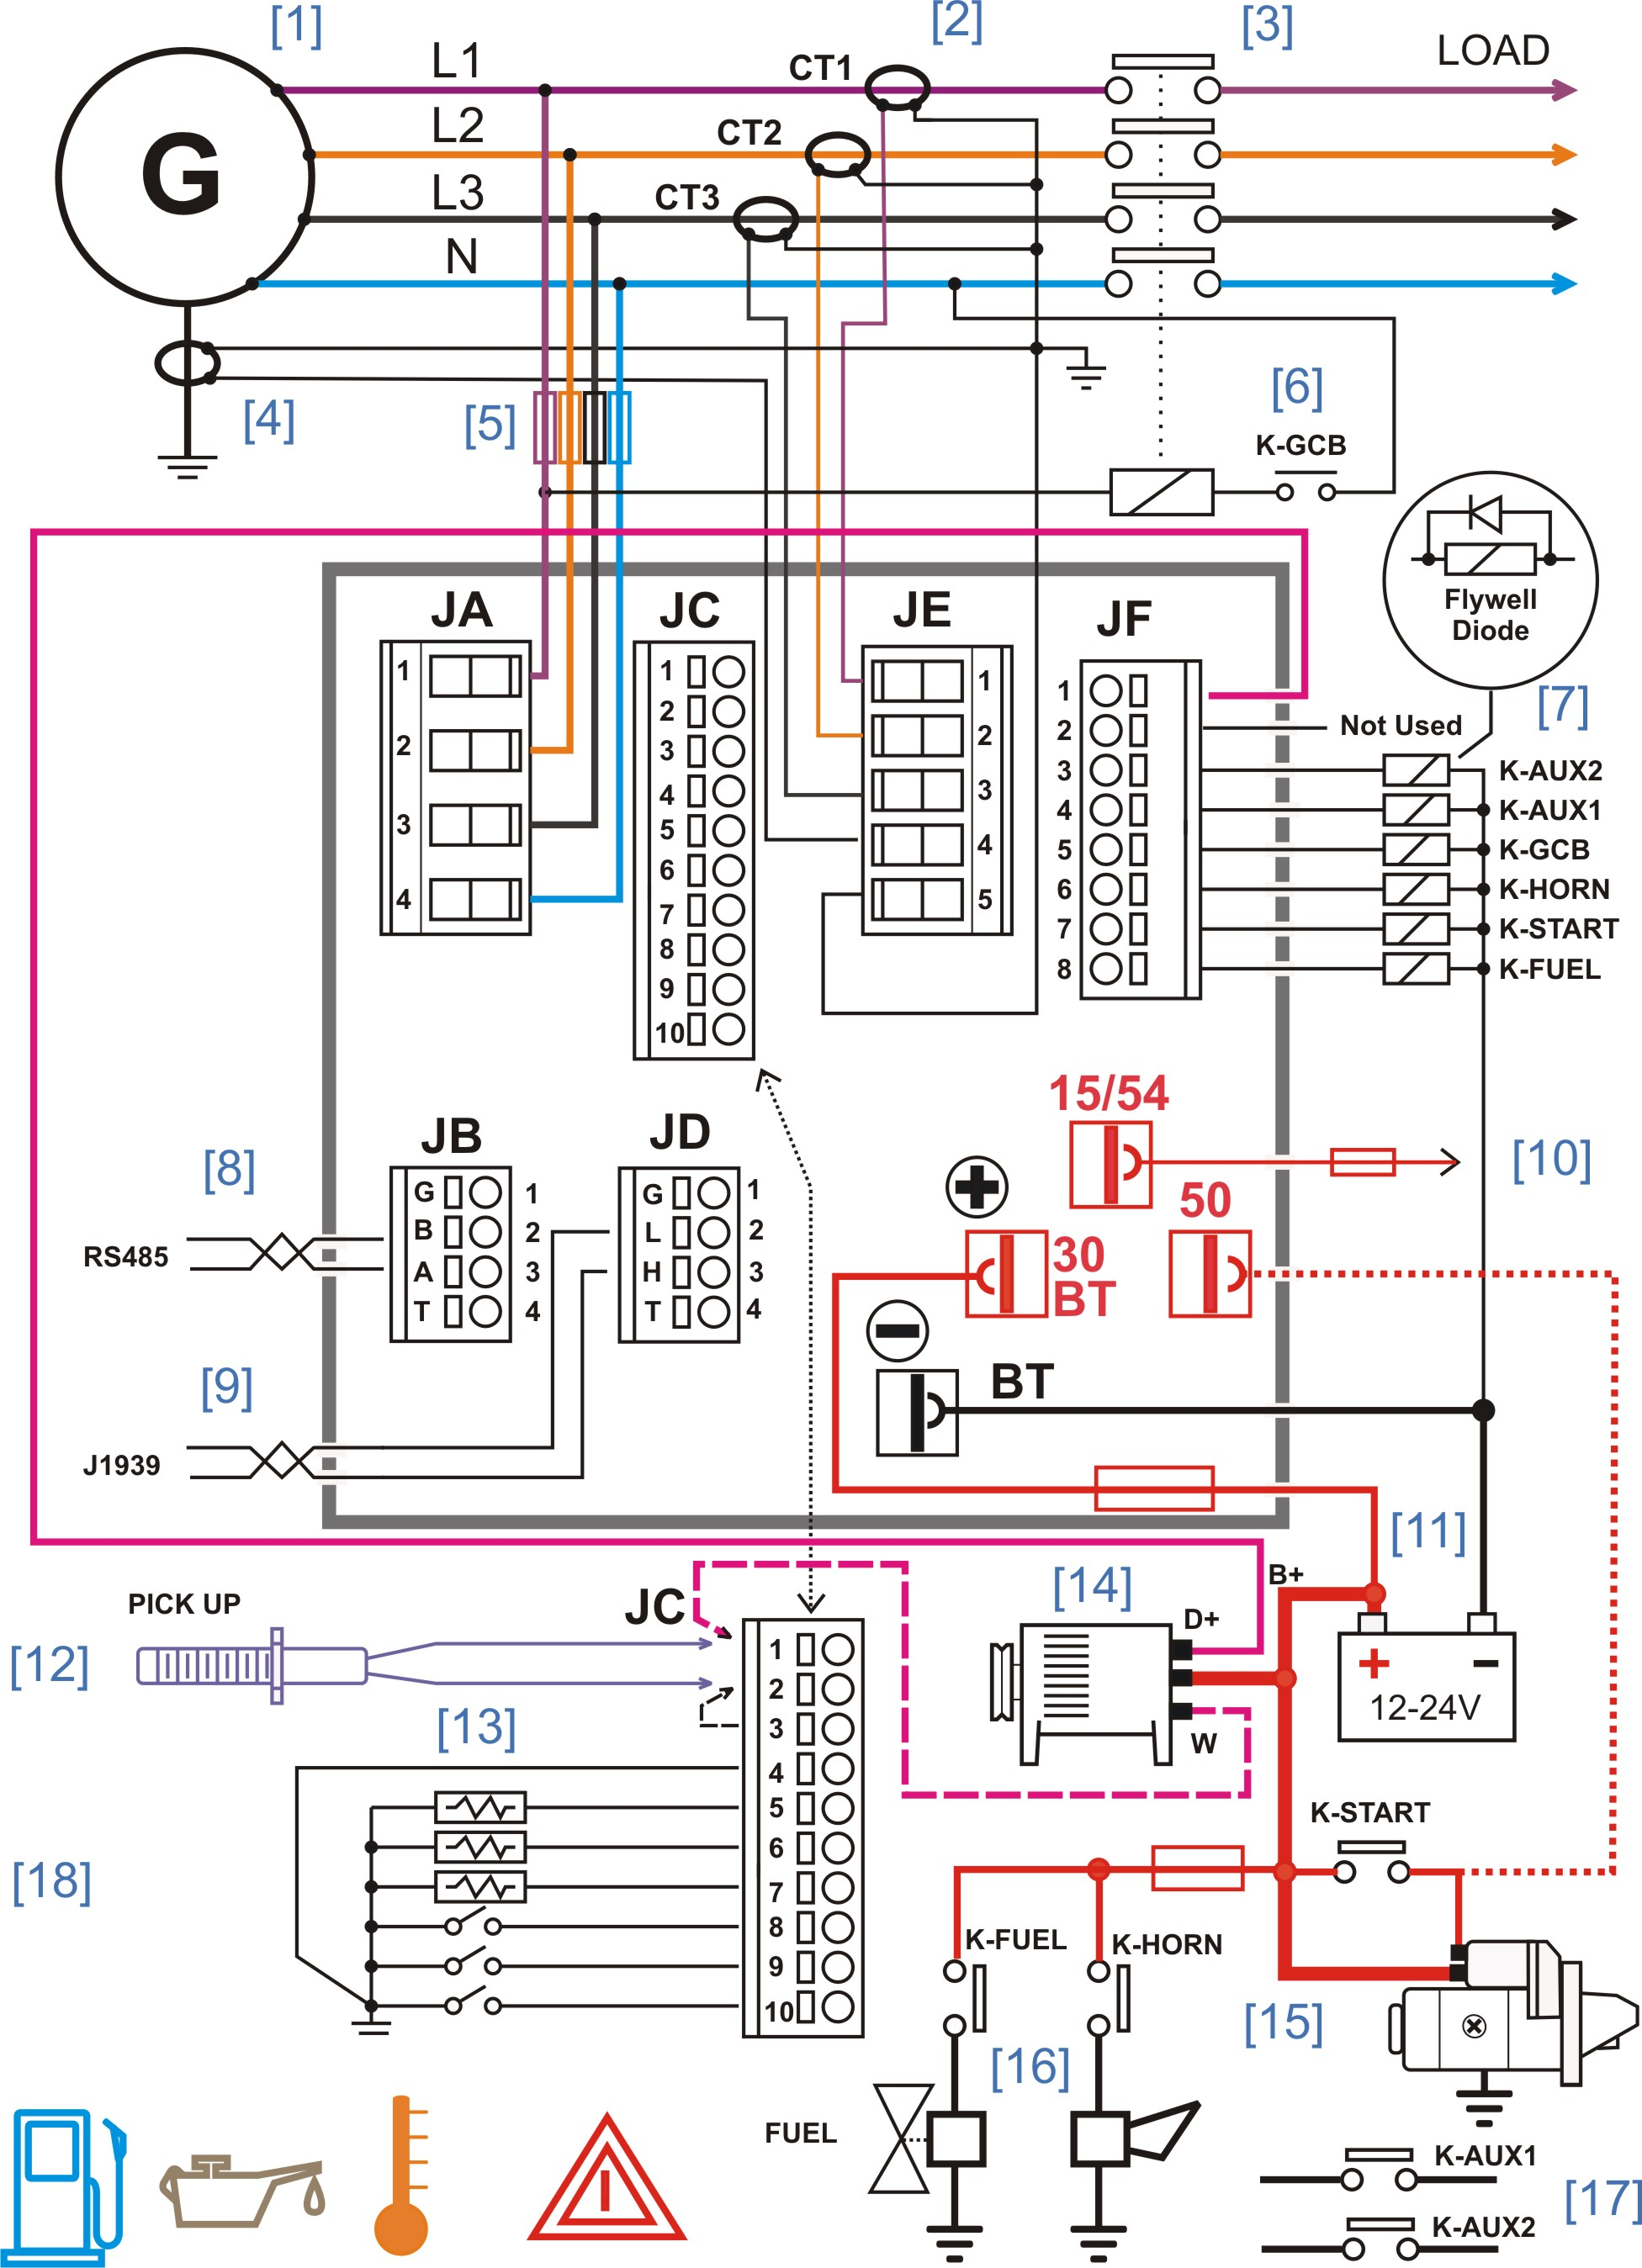 Generator Controller Wiring Diagram generator controller wiring diagram genset controller electrical control wiring diagrams at mr168.co